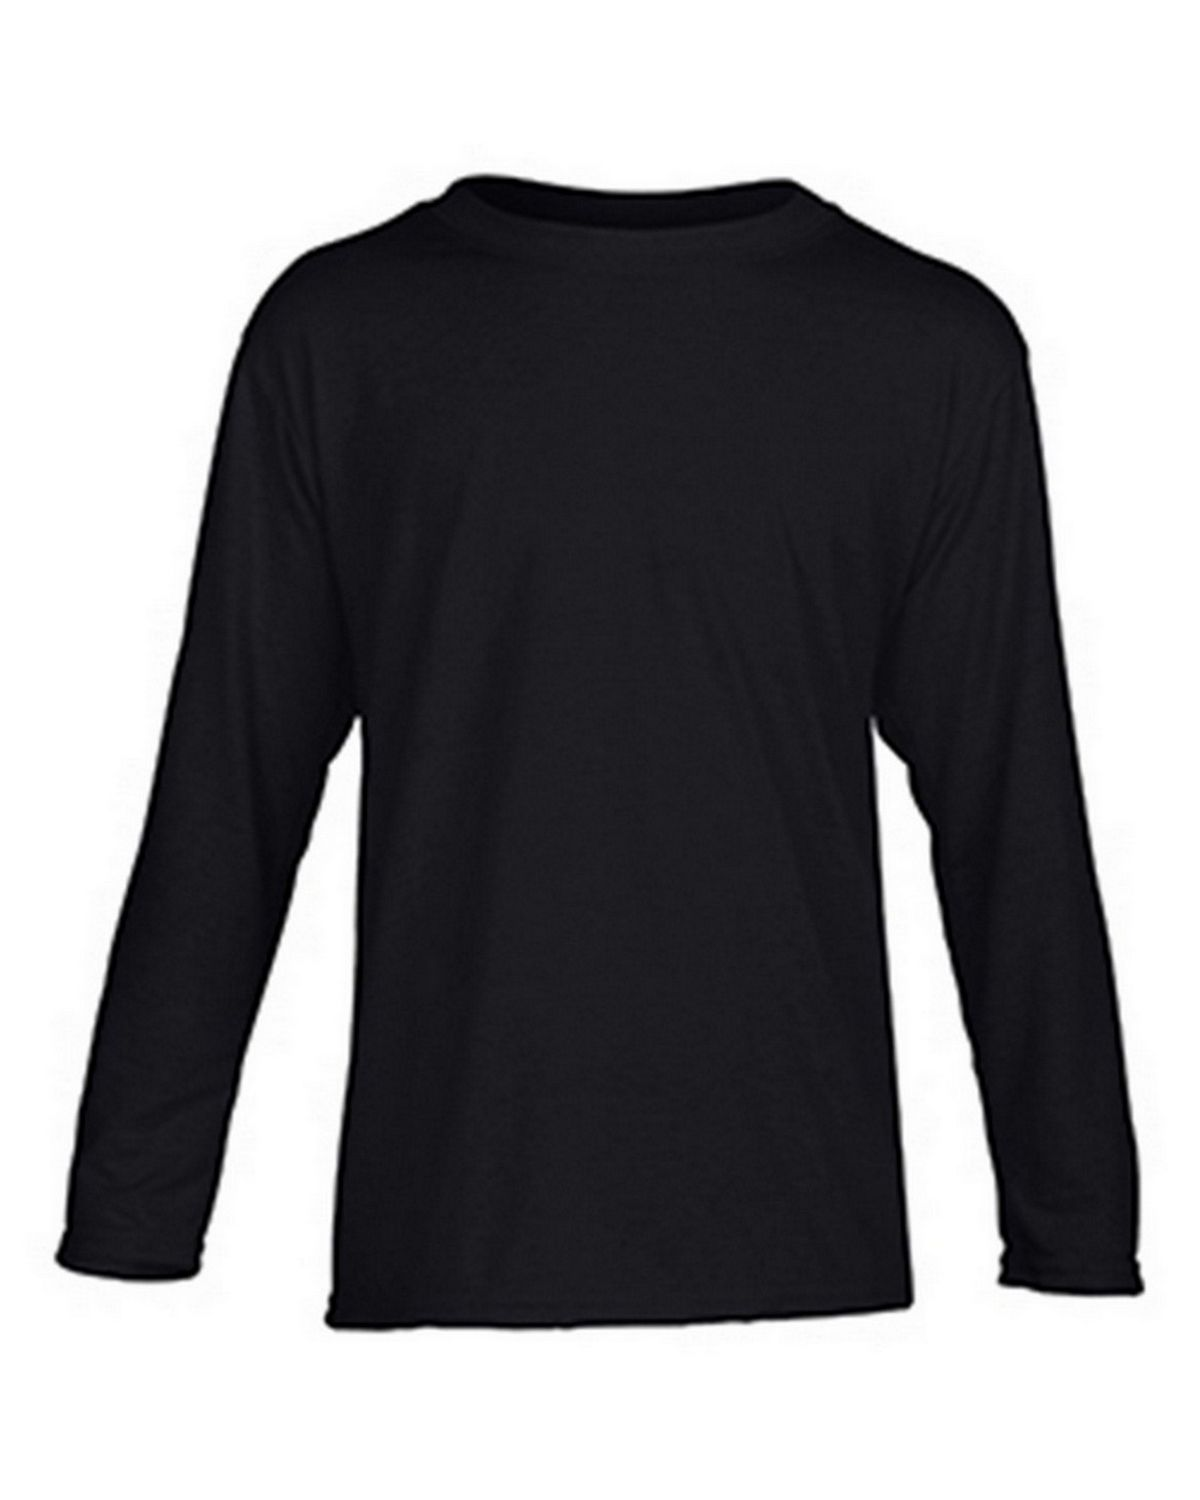 Gildan G42400B Youth Long Sleeve Tee - Black - S G42400B